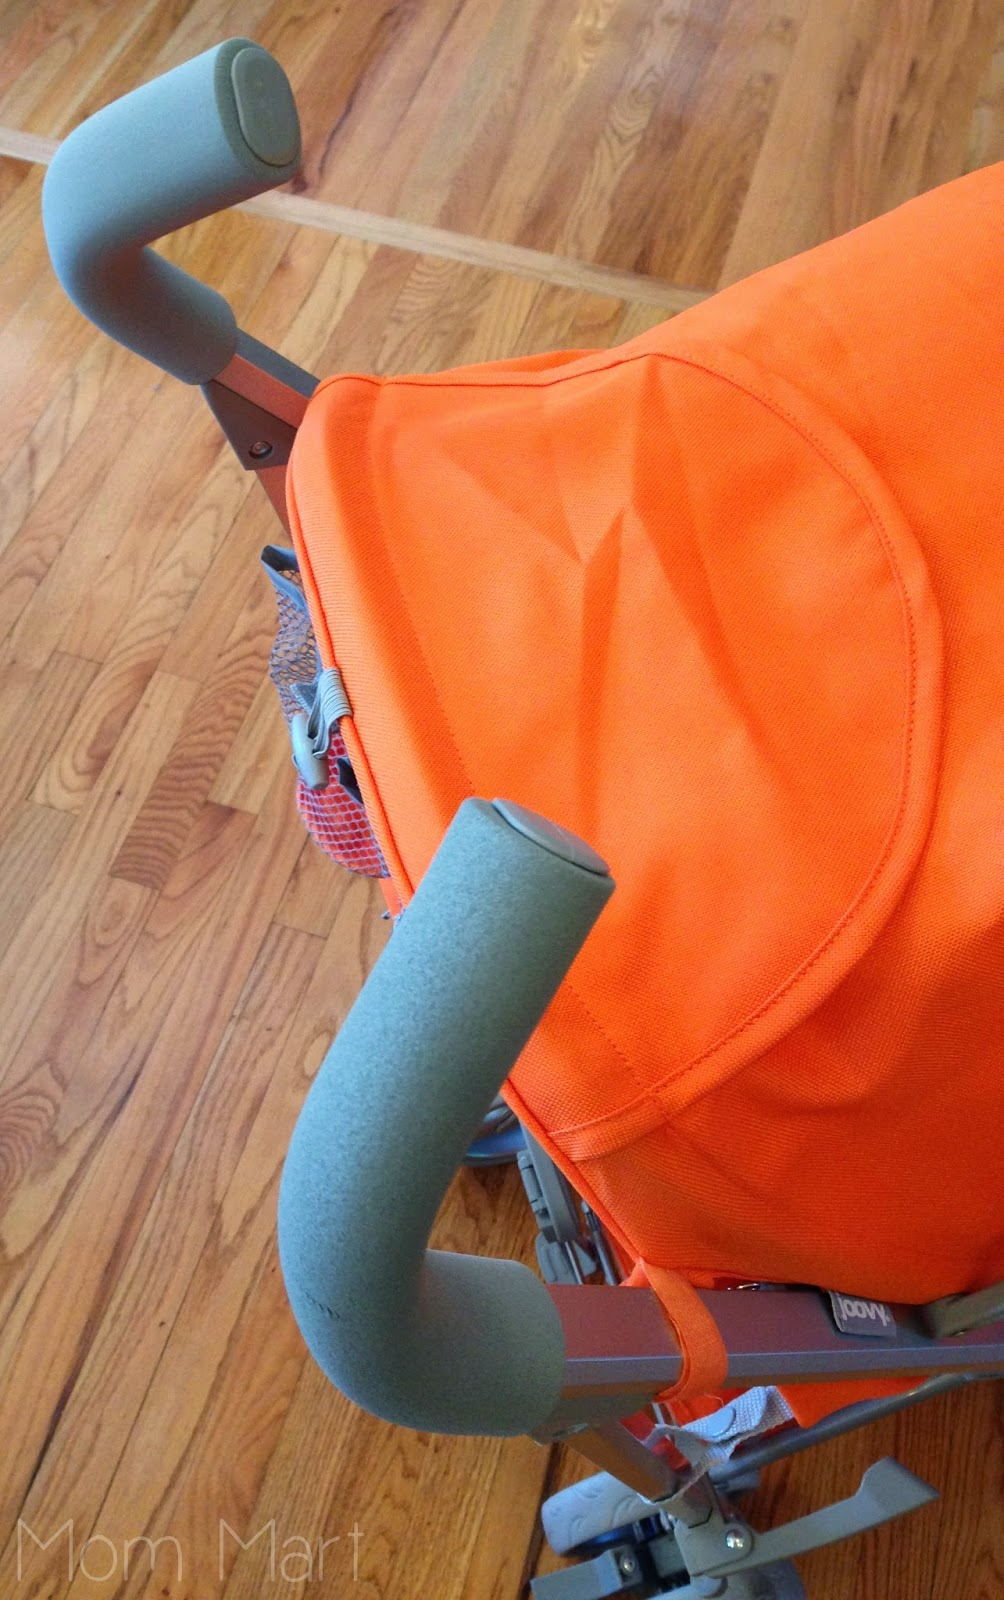 How to replace the foam parent handle on the Joovy Groove stroller #tutorial